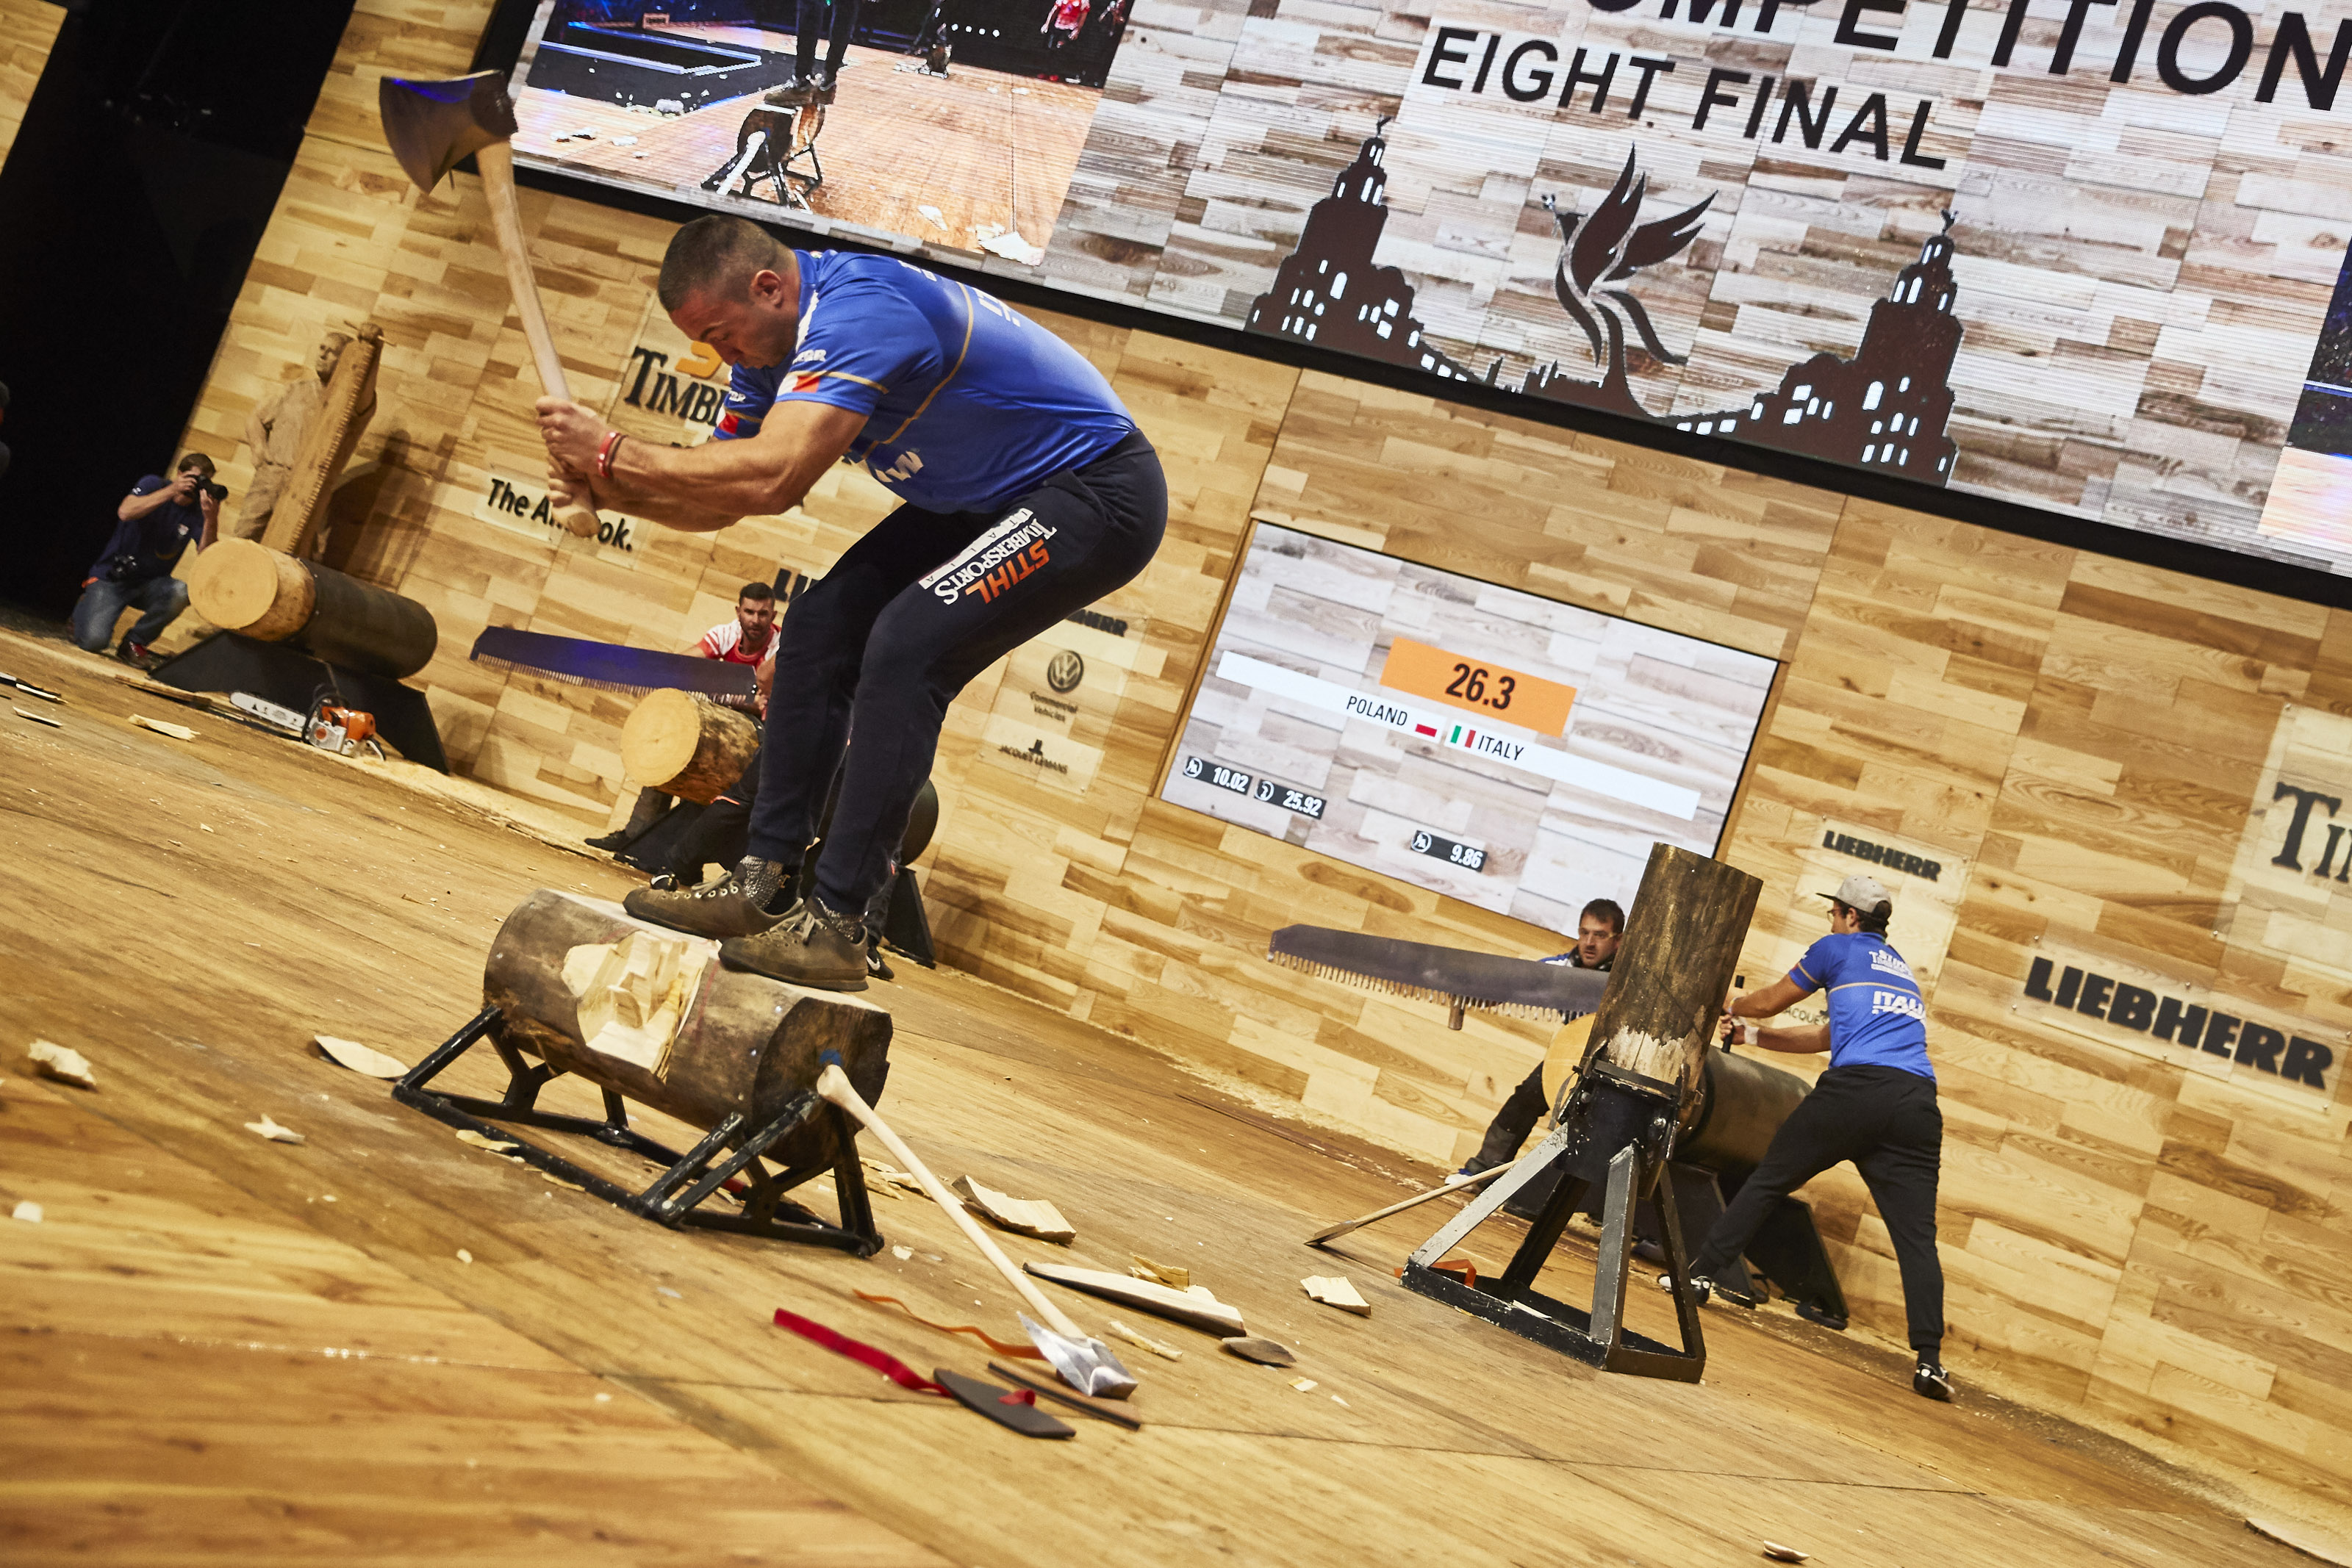 Team Italy competes during the STIHL TIMBERSPORTS® Team World Championship at the Echo Arena in Liverpool, Great Britain on October 19, 2018.